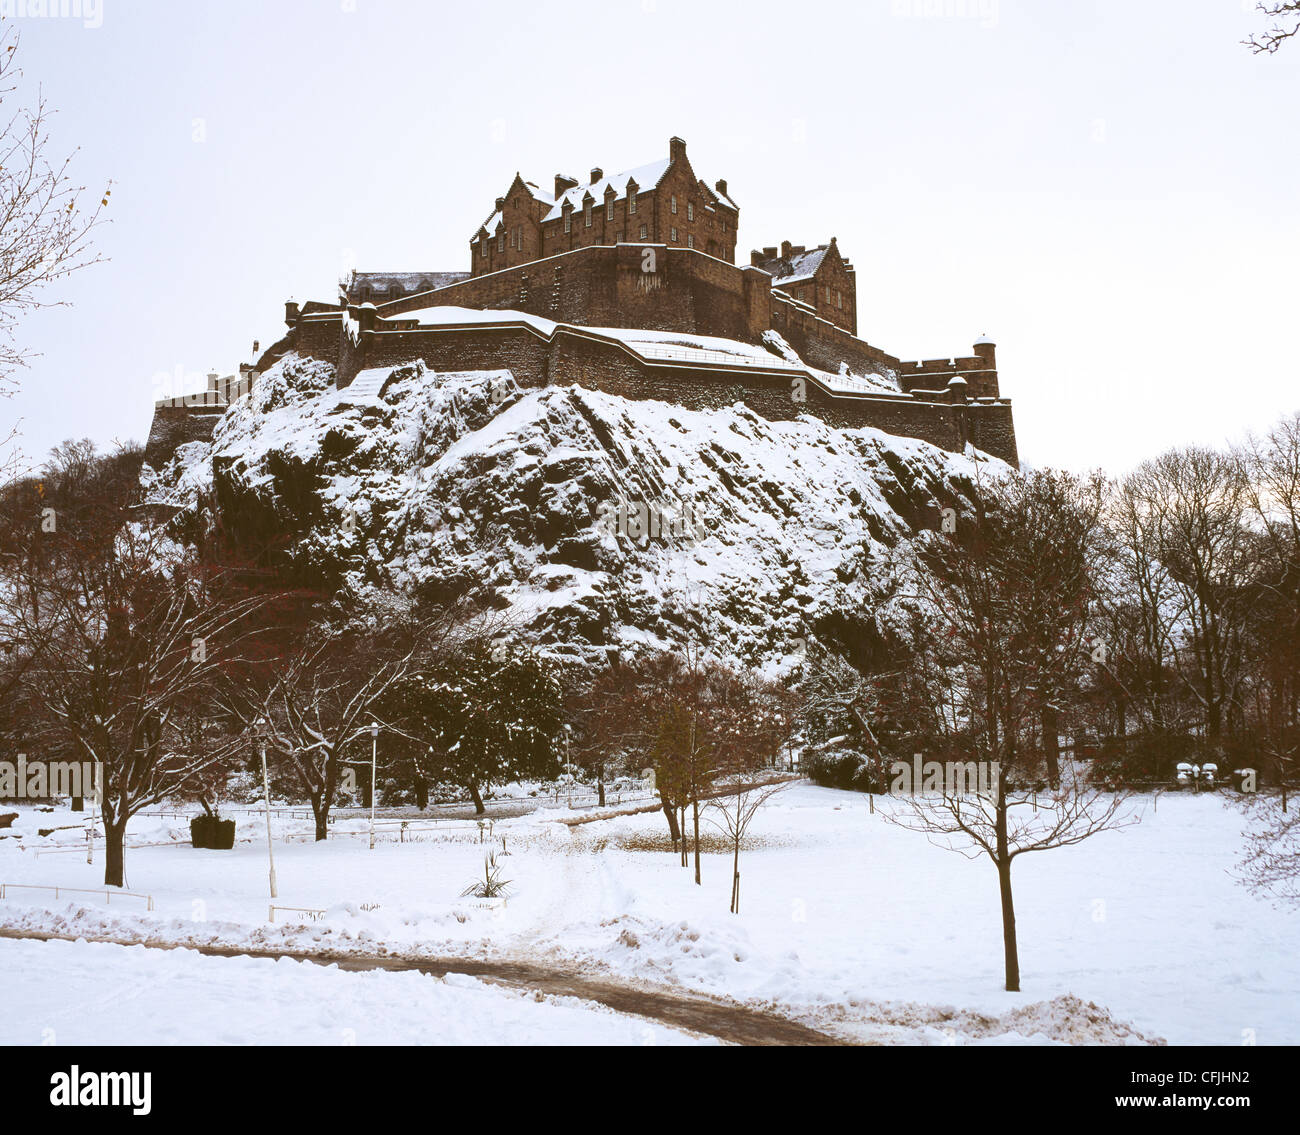 Edinburgh Castle, Scotland - Stock Image